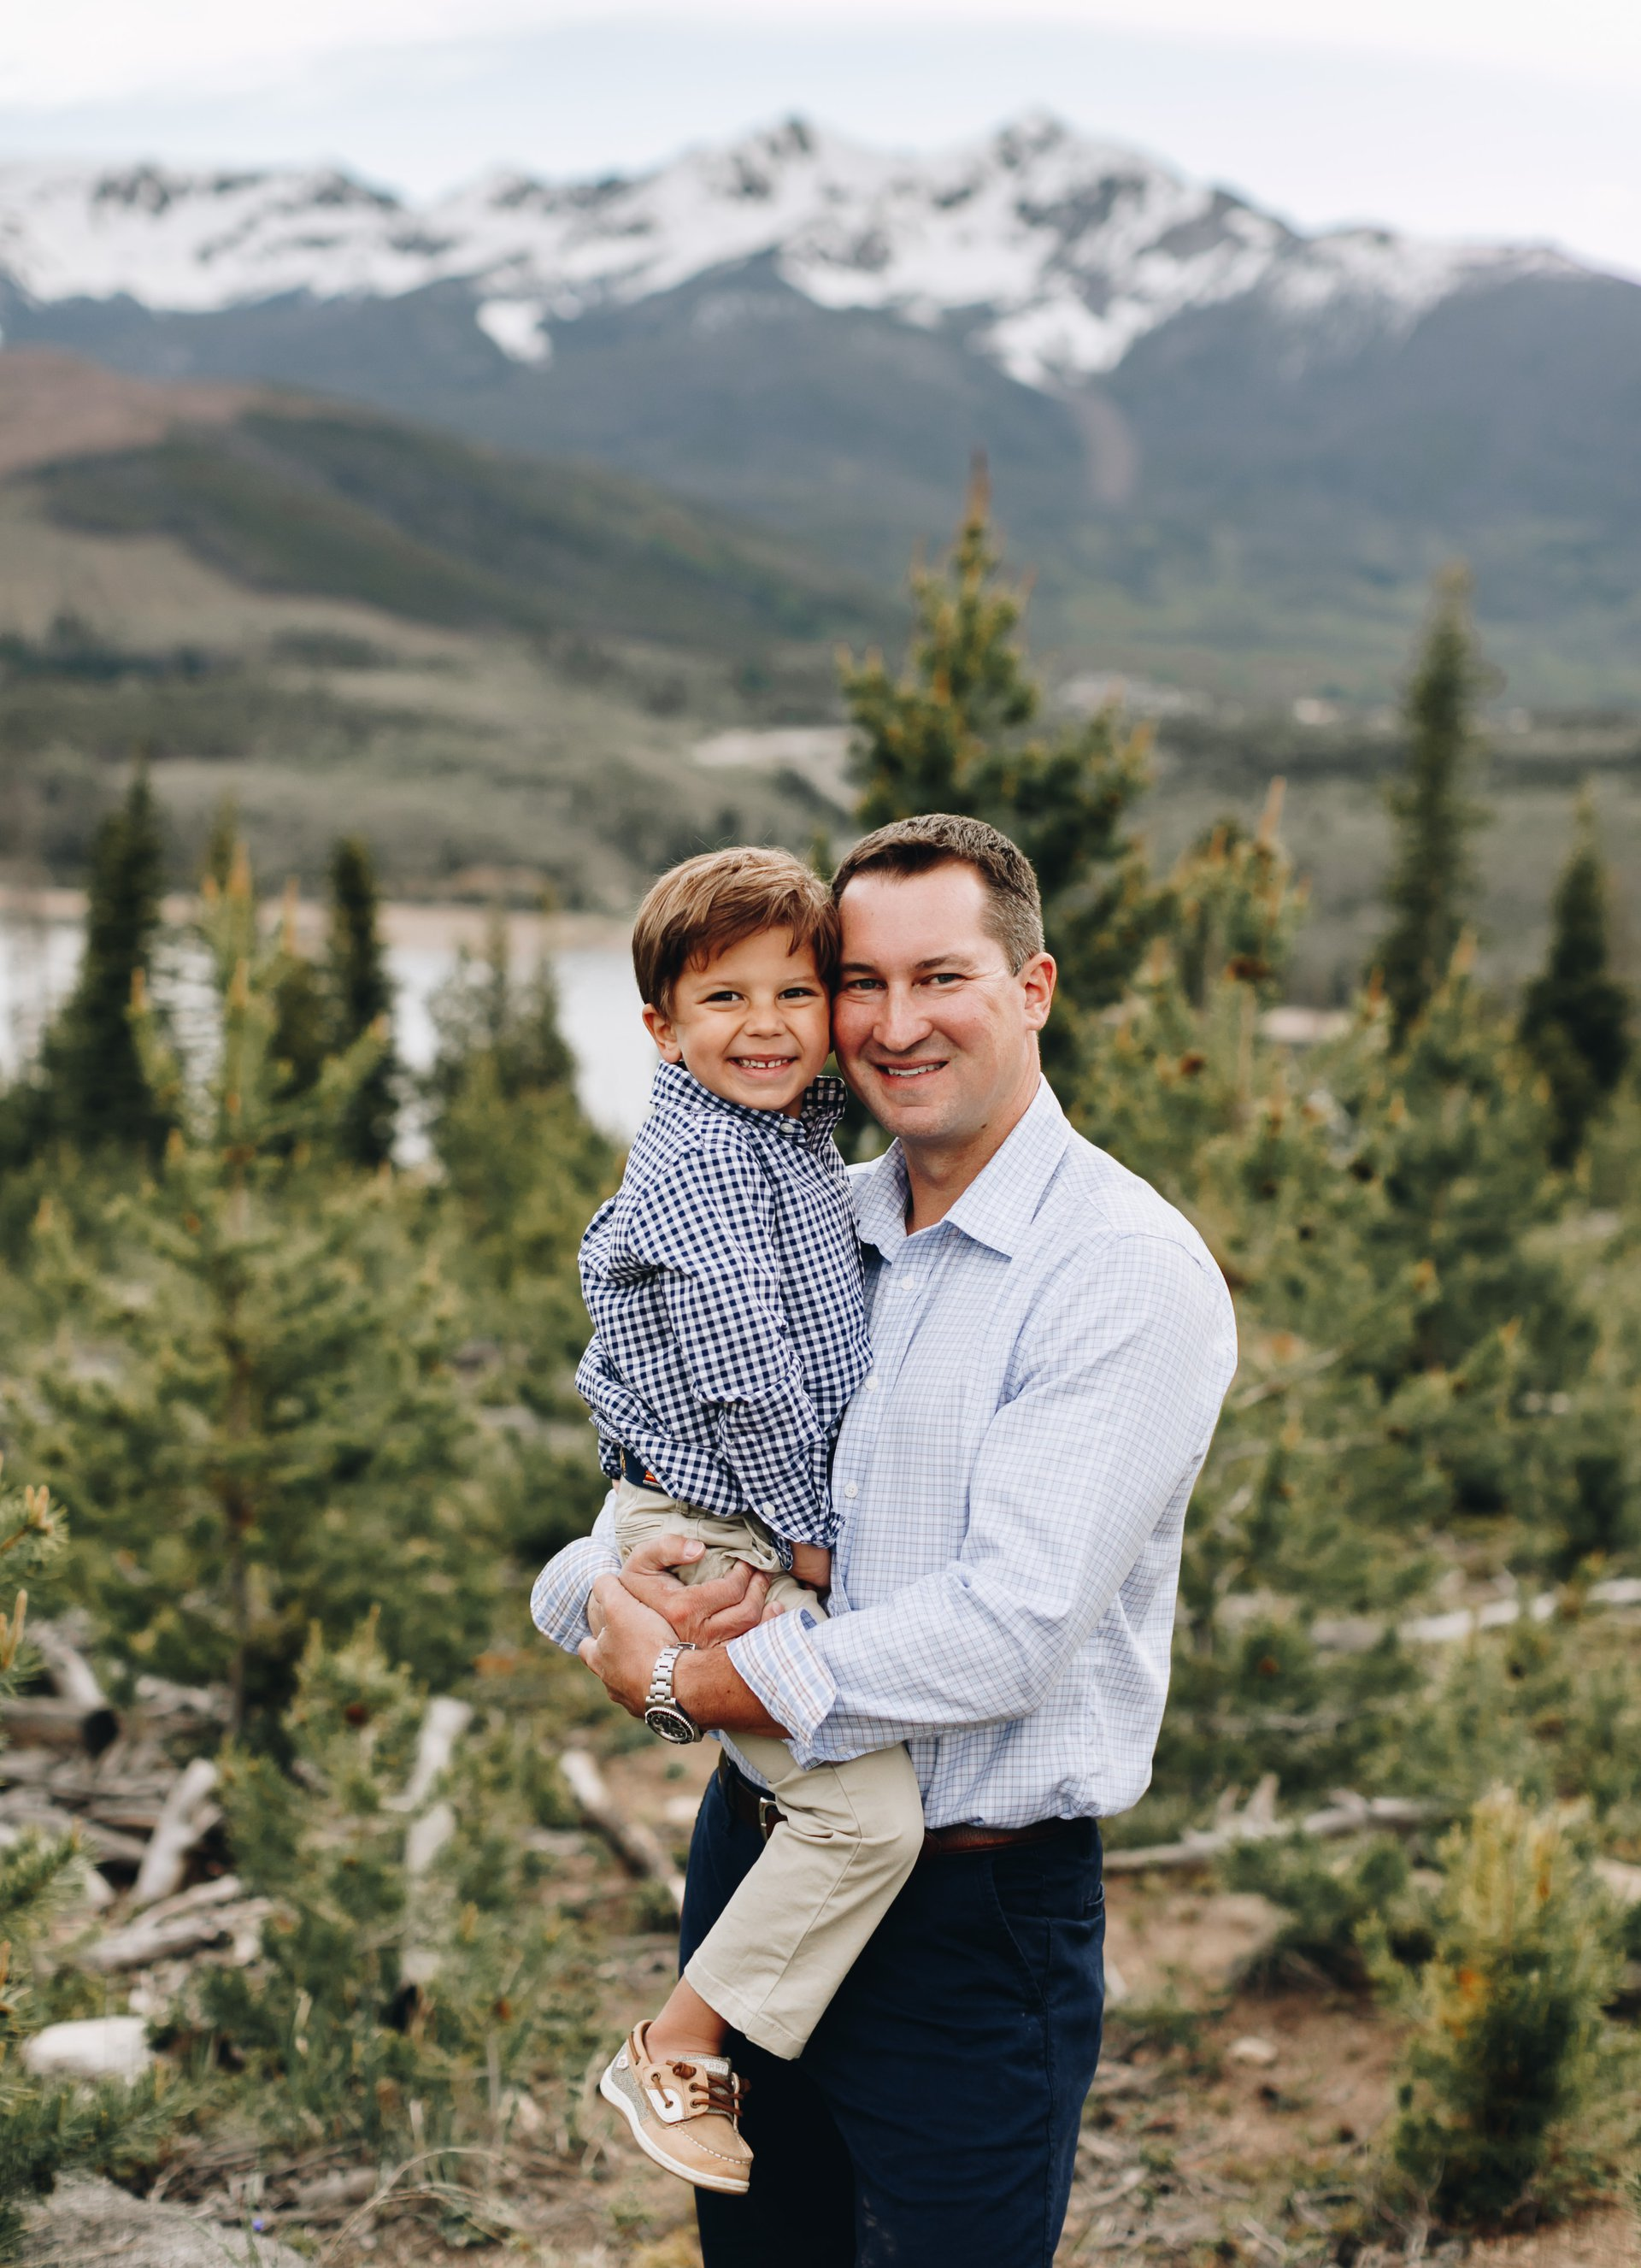 Breckenridge-United States-travel-story-Flytographer-4